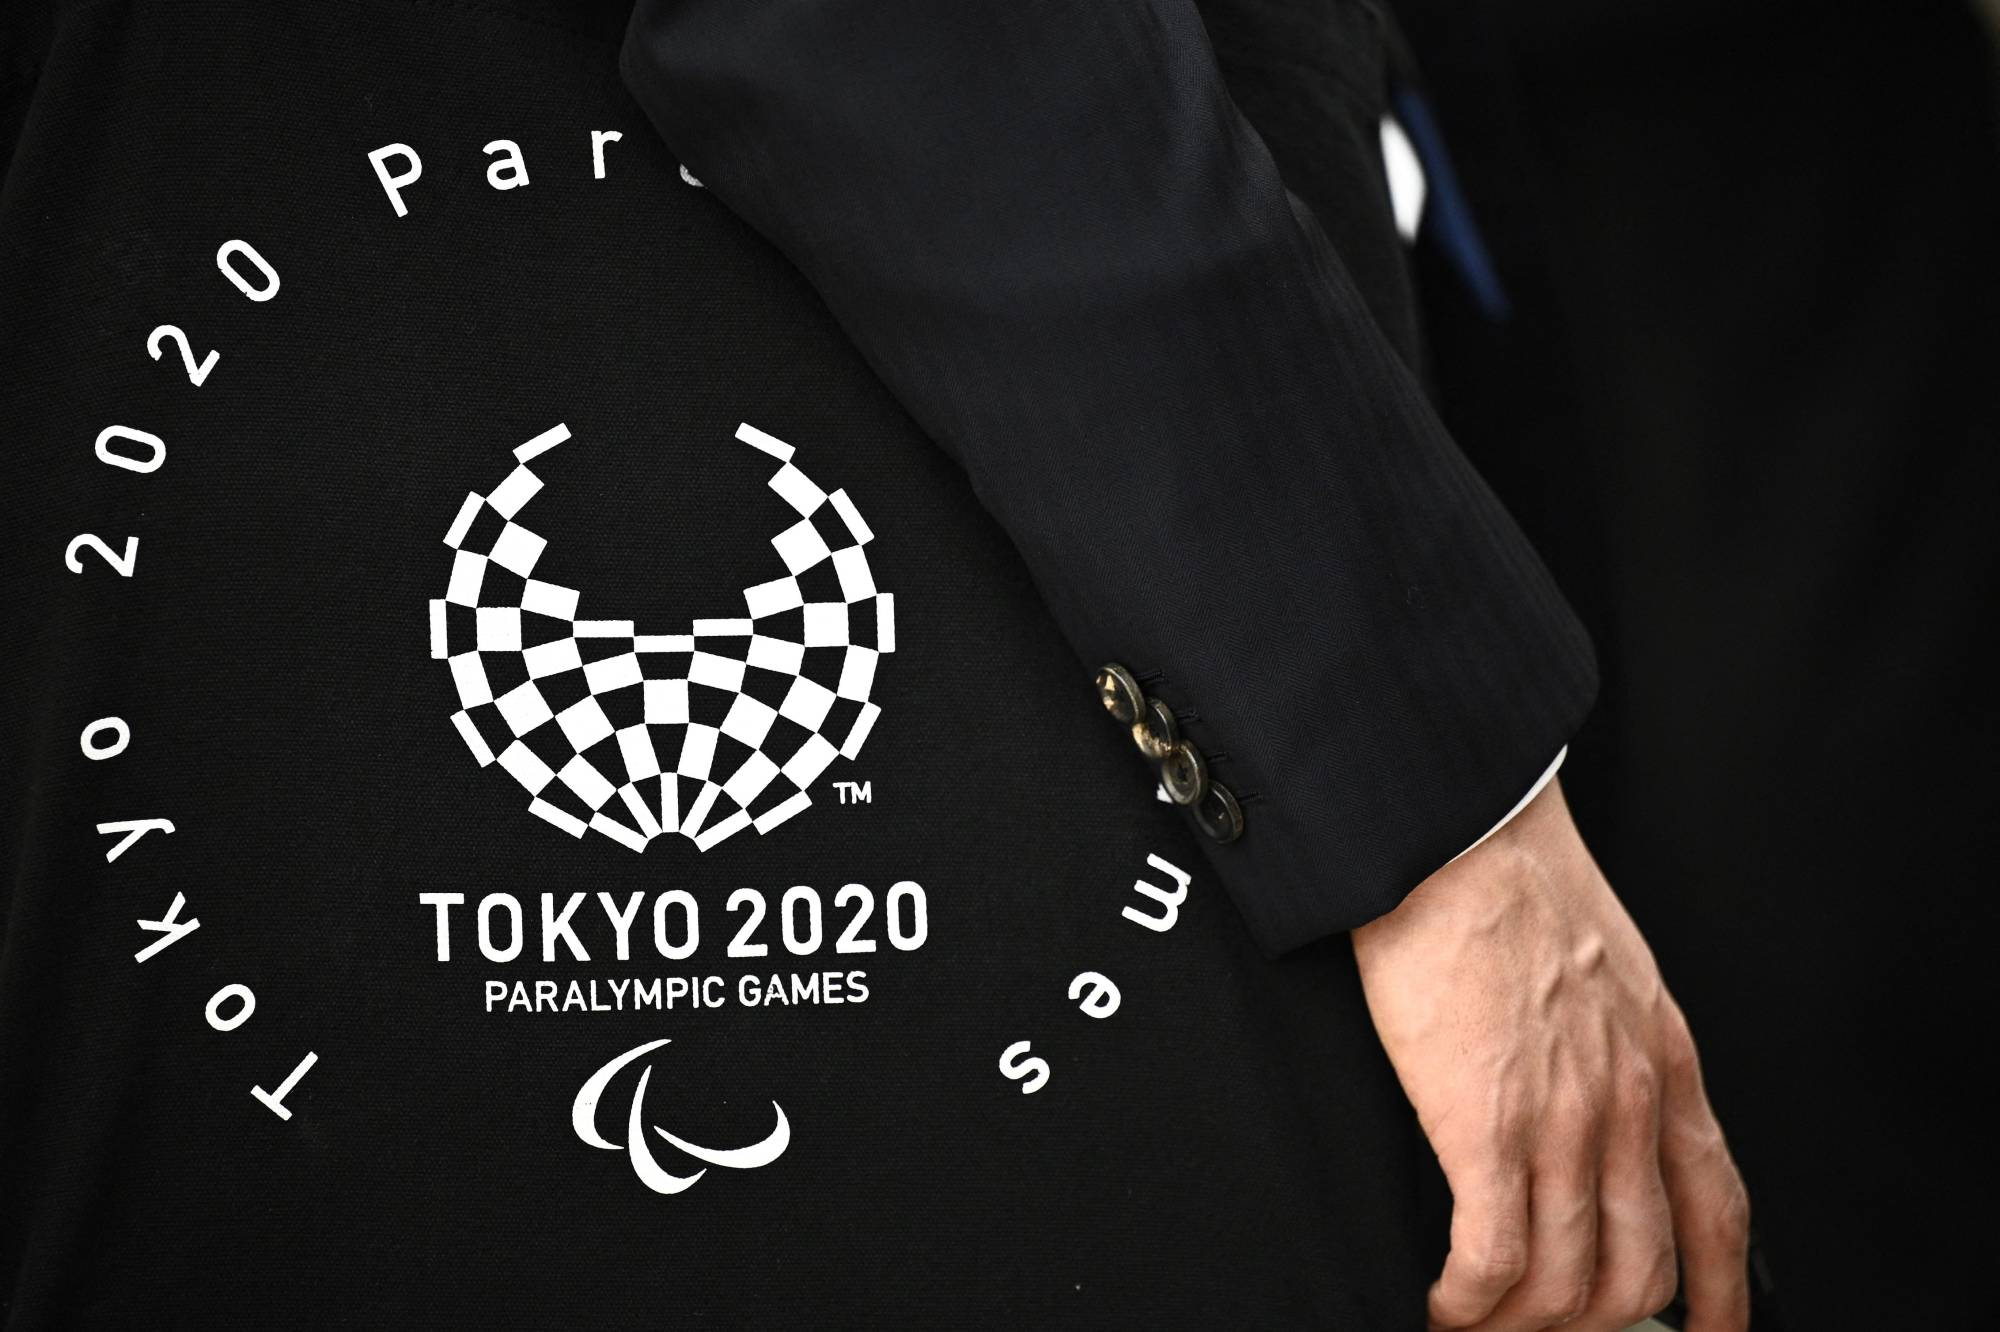 More than 1,000 volunteers have withdrawn from participating in the Tokyo Games after sexist remarks by the former president of the organizing committee. | AFP-JIJI